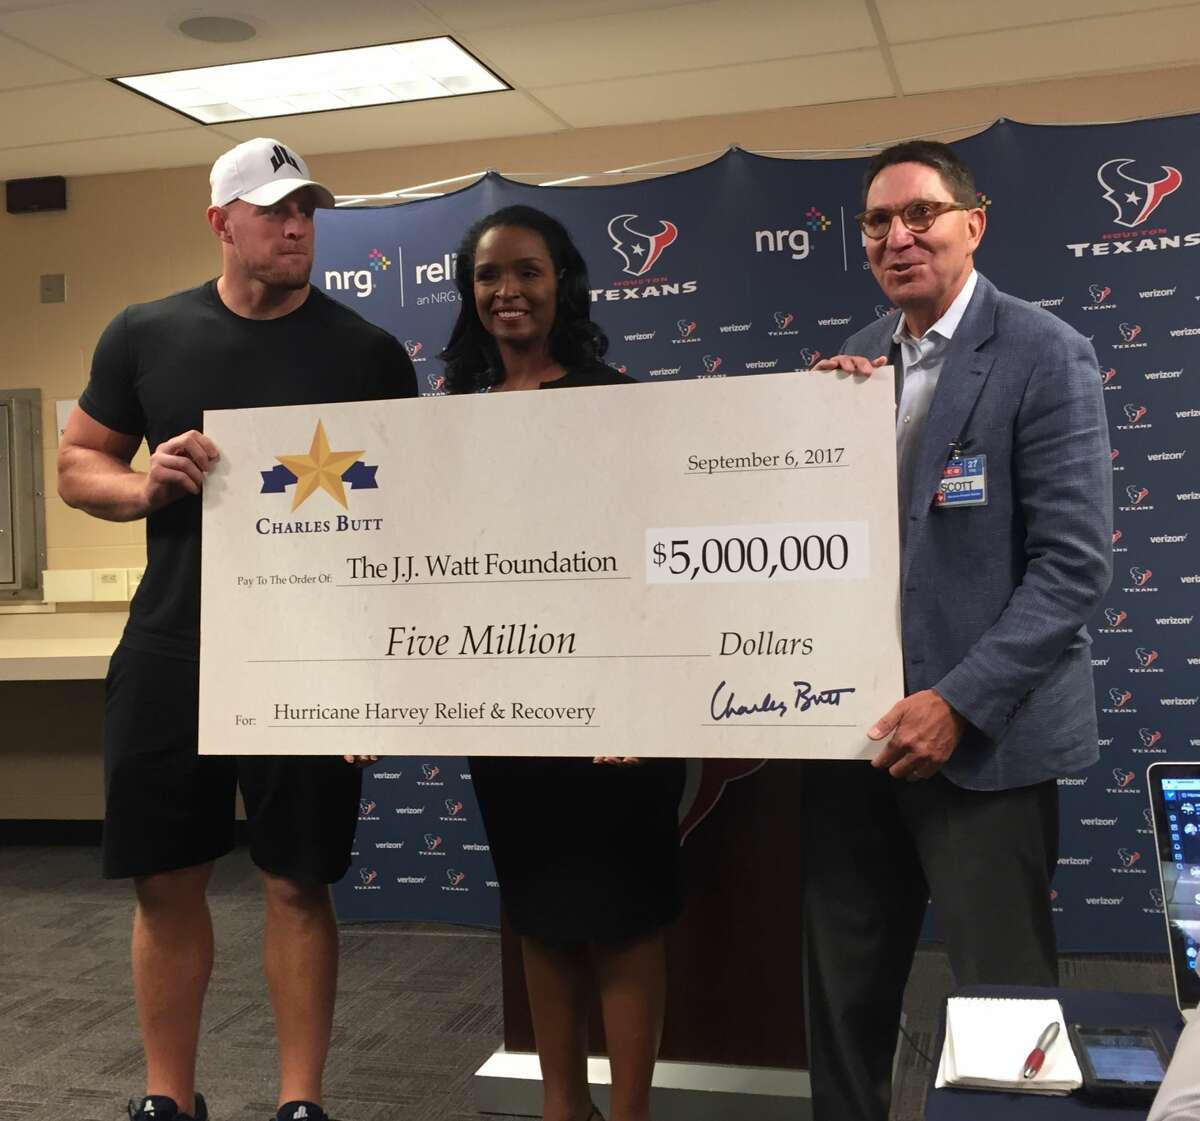 On Wednesday H-E-B chairman and CEO Charles Butt sent a personal, $5 million contribution to the Justin J. Watt Foundation's hurricane relief fund, which has collected in excess of $22 million.